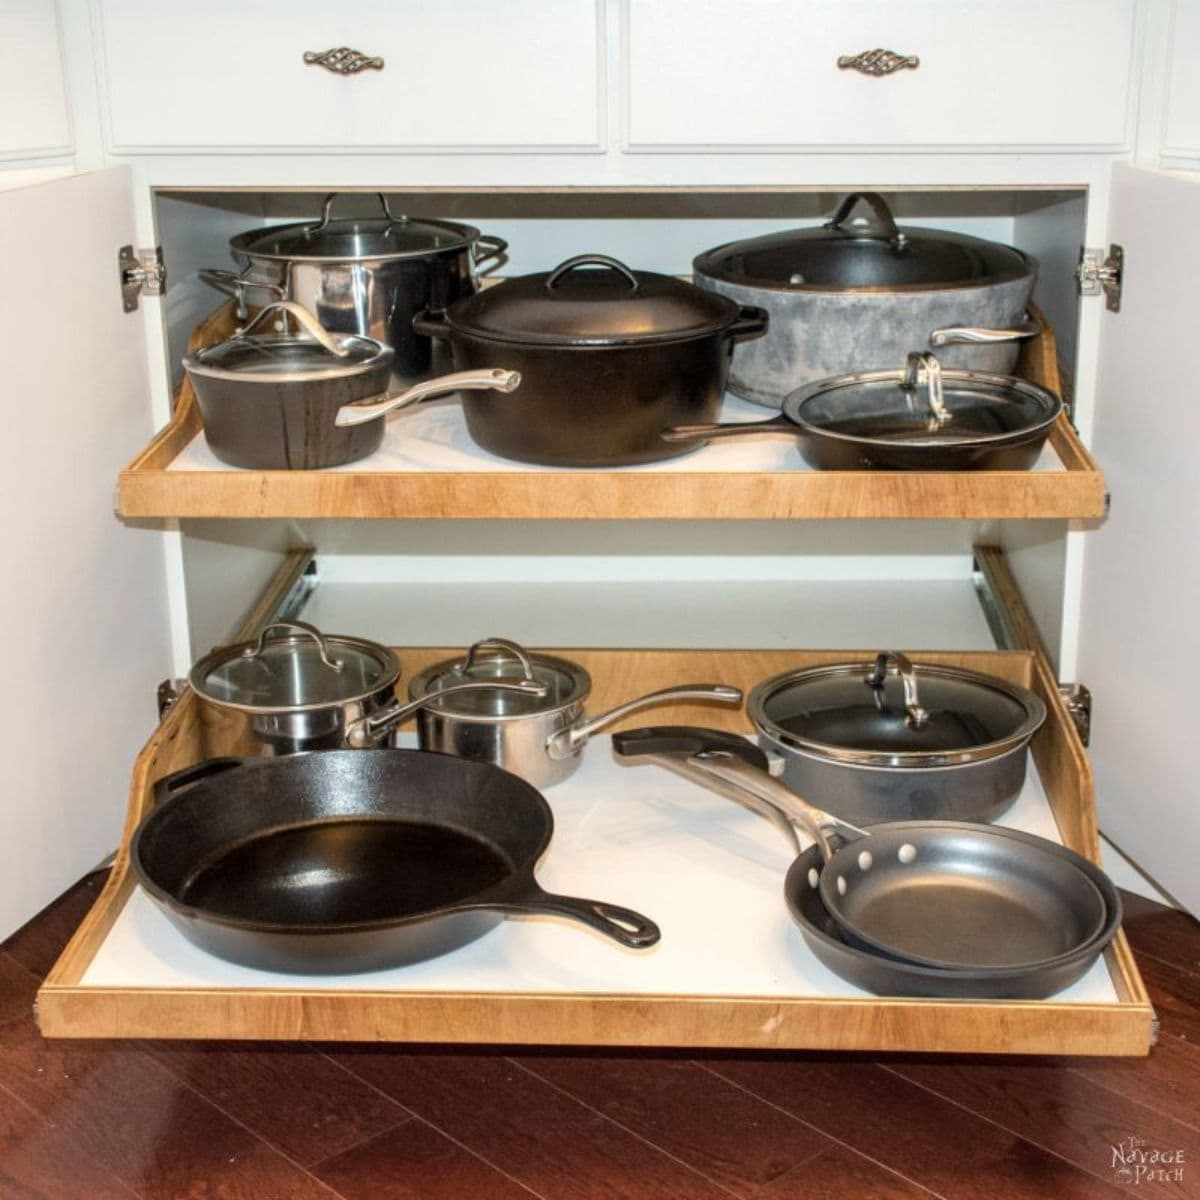 The inside of a kitchen cabinet is shown with 2 sliding shelves slightly oulled out. Each shelf holds pots and pans